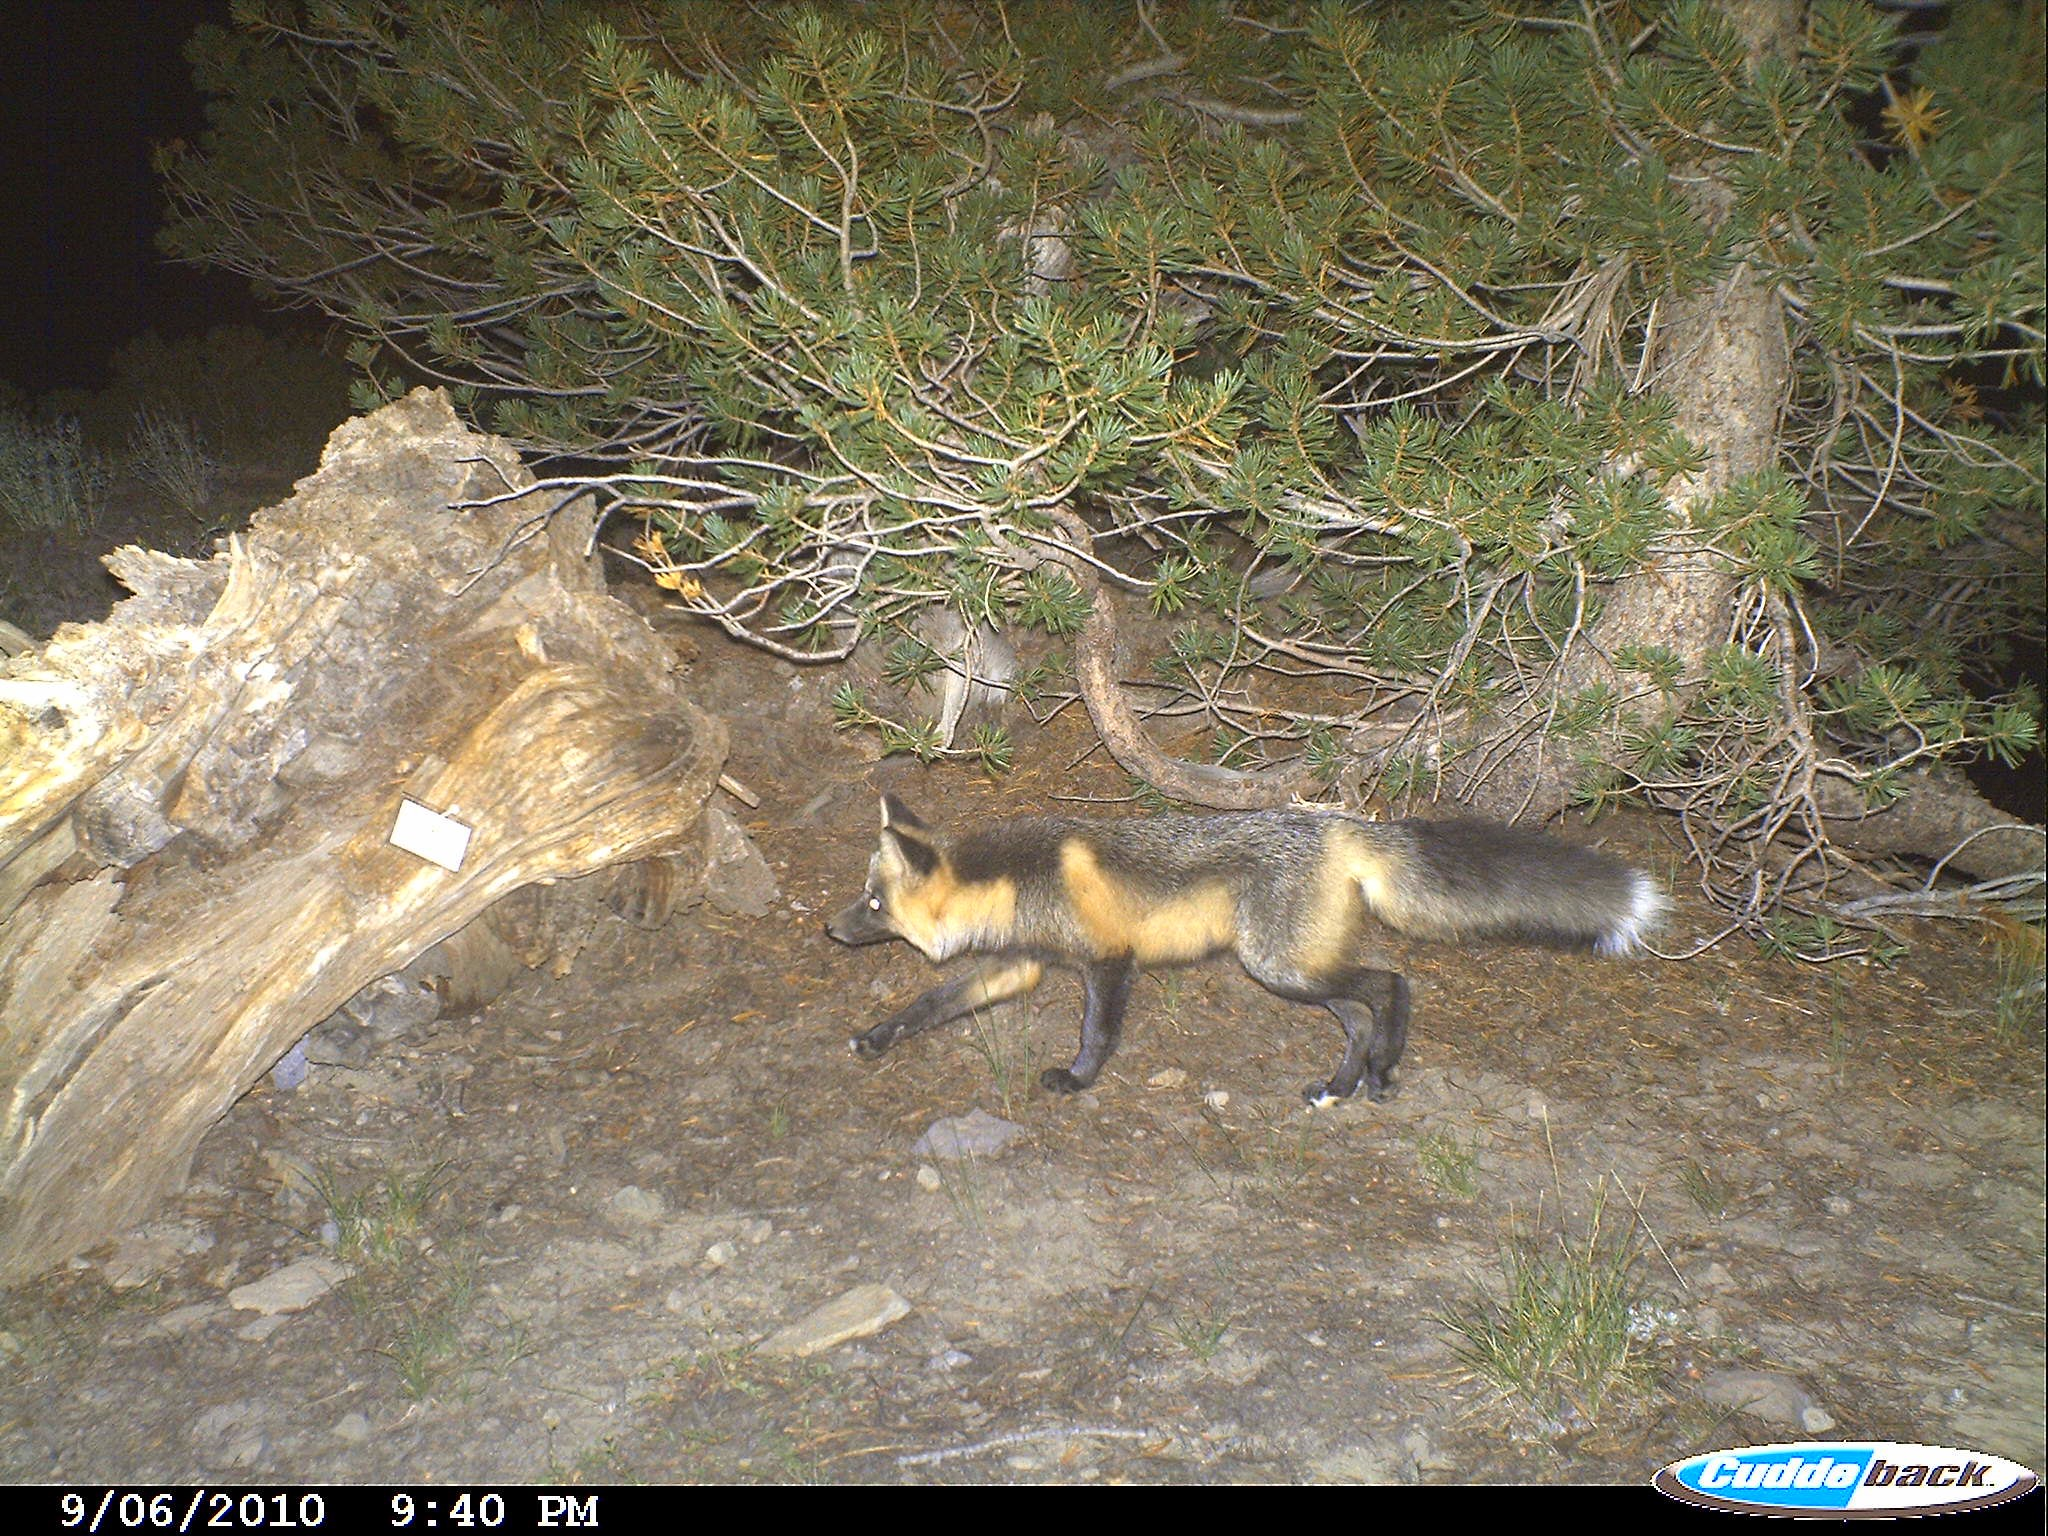 a black and red Sierra Nevada red fox walking through a forested area